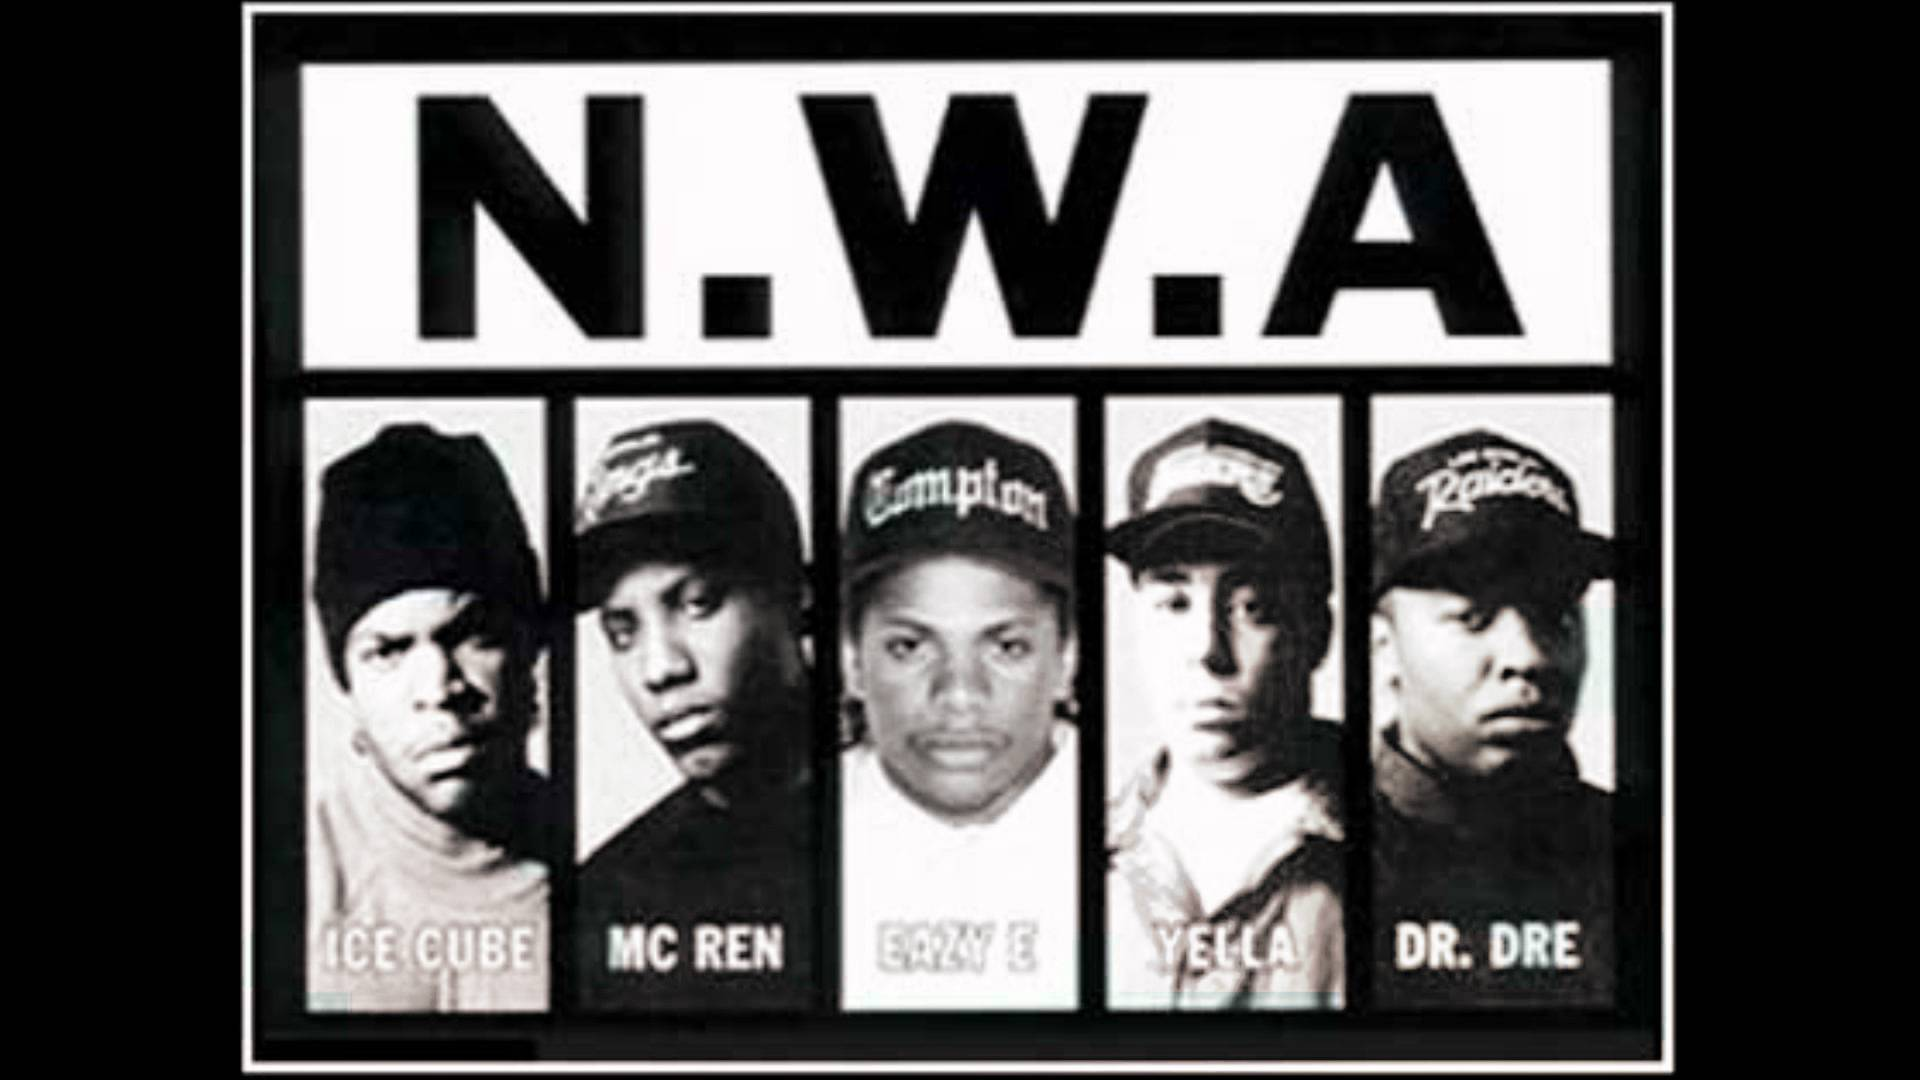 Images For Ice Cube Nwa Wallpaper 1920x1080